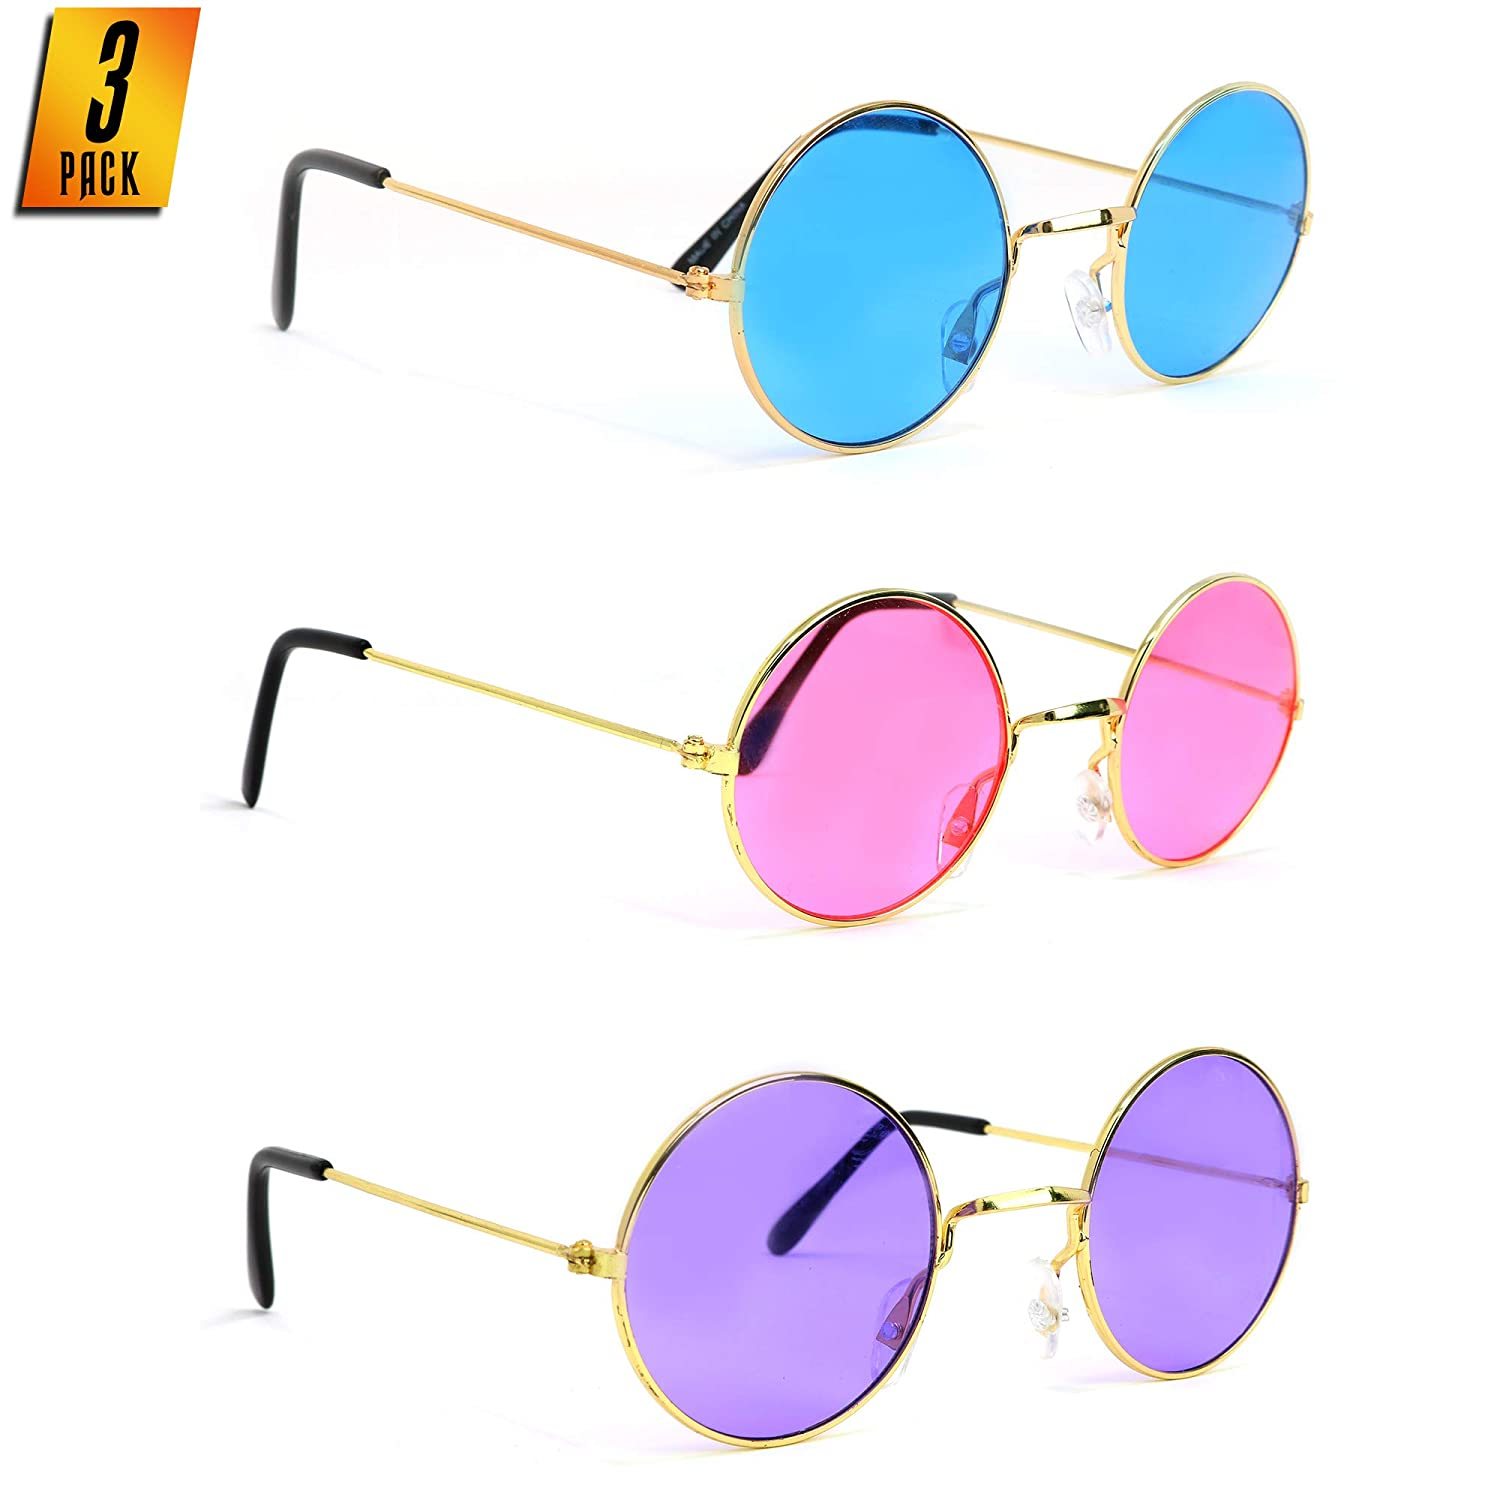 Skeleteen John Lennon Hippie Sunglasses – Pink Purple and Blue 60's Style Circle Glasses - 3 Pairs